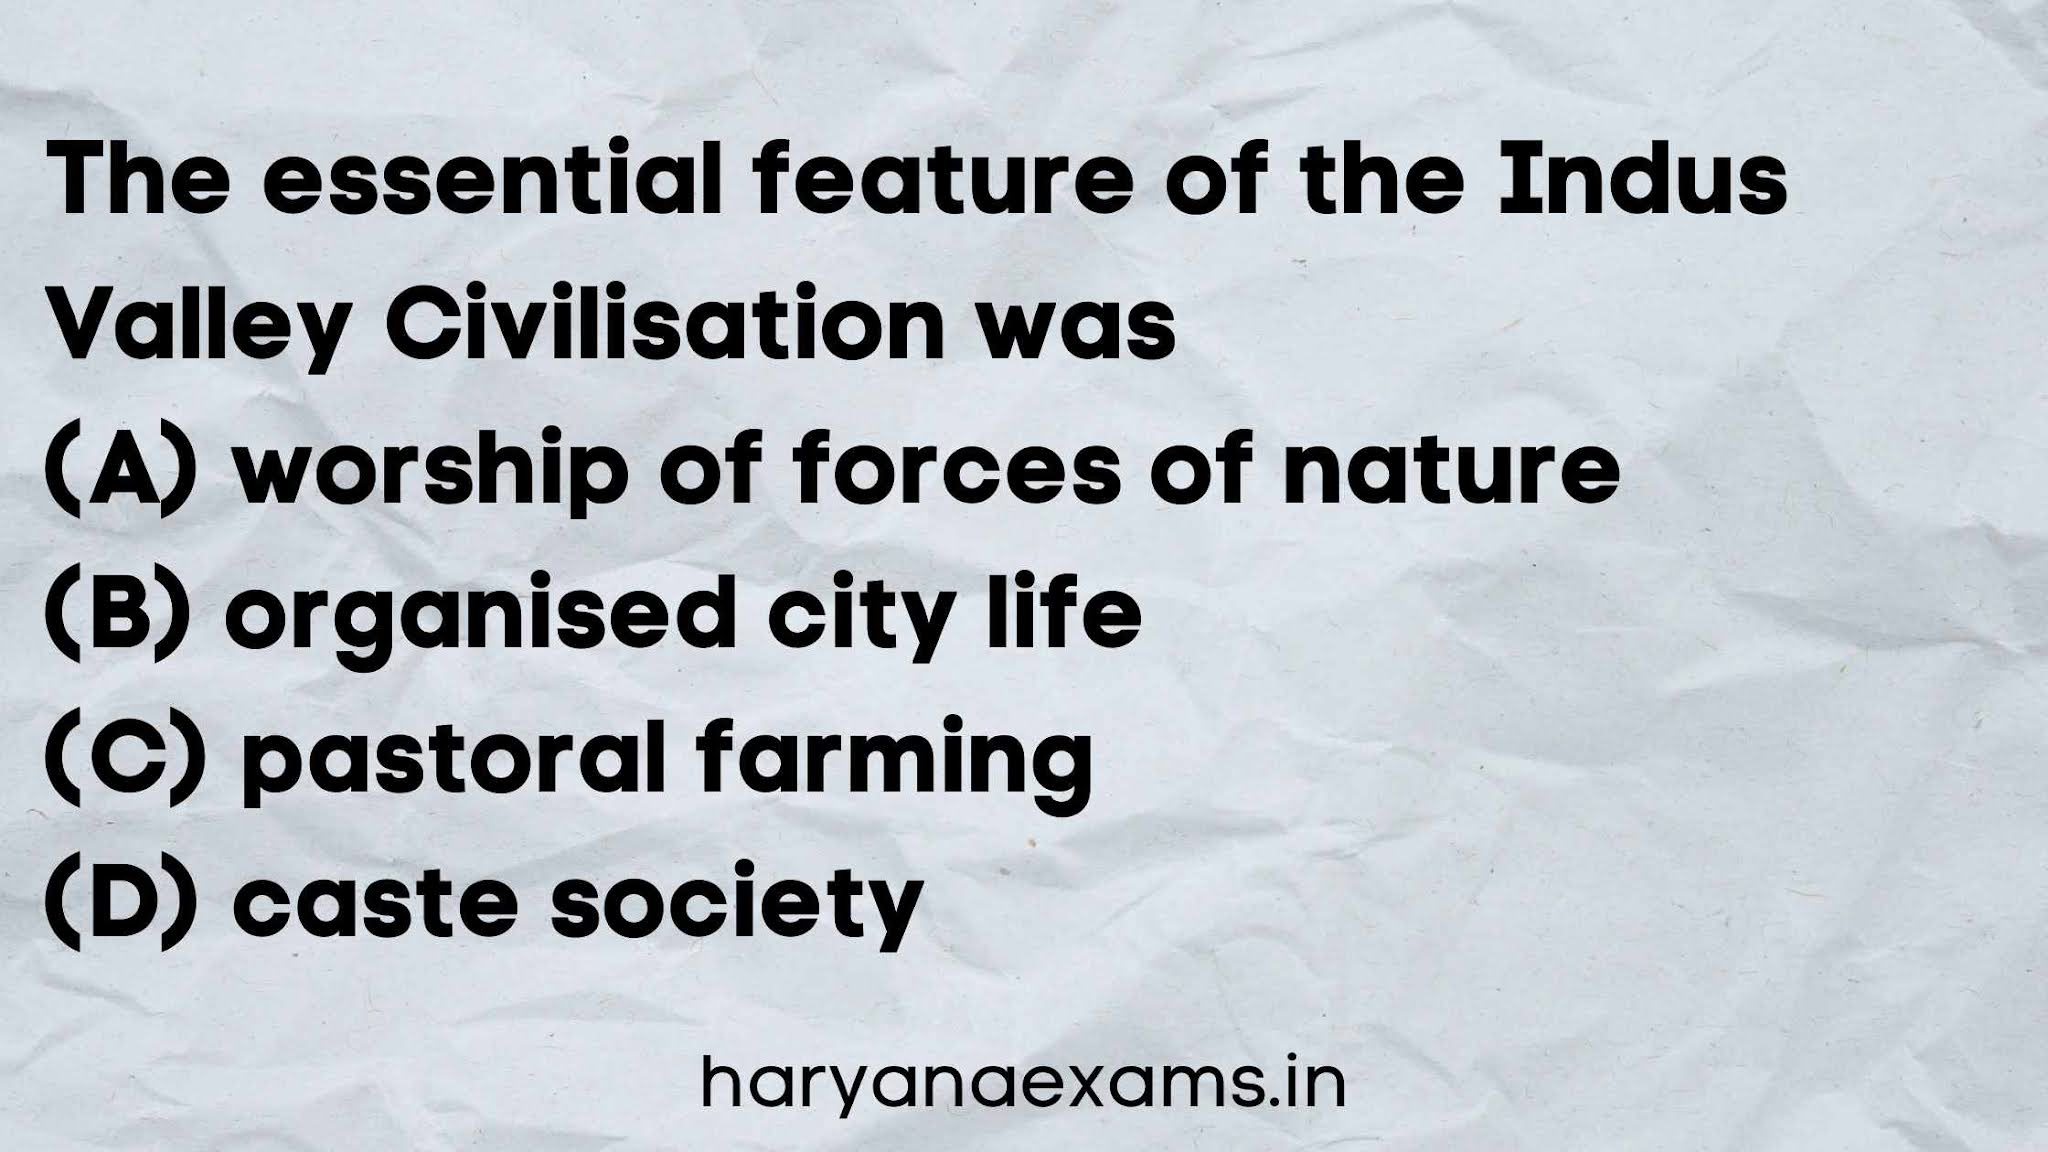 The essential feature of the Indus Valley Civilisation was   (A) worship of forces of nature   (B) organised city life   (C) pastoral farming   (D) caste society